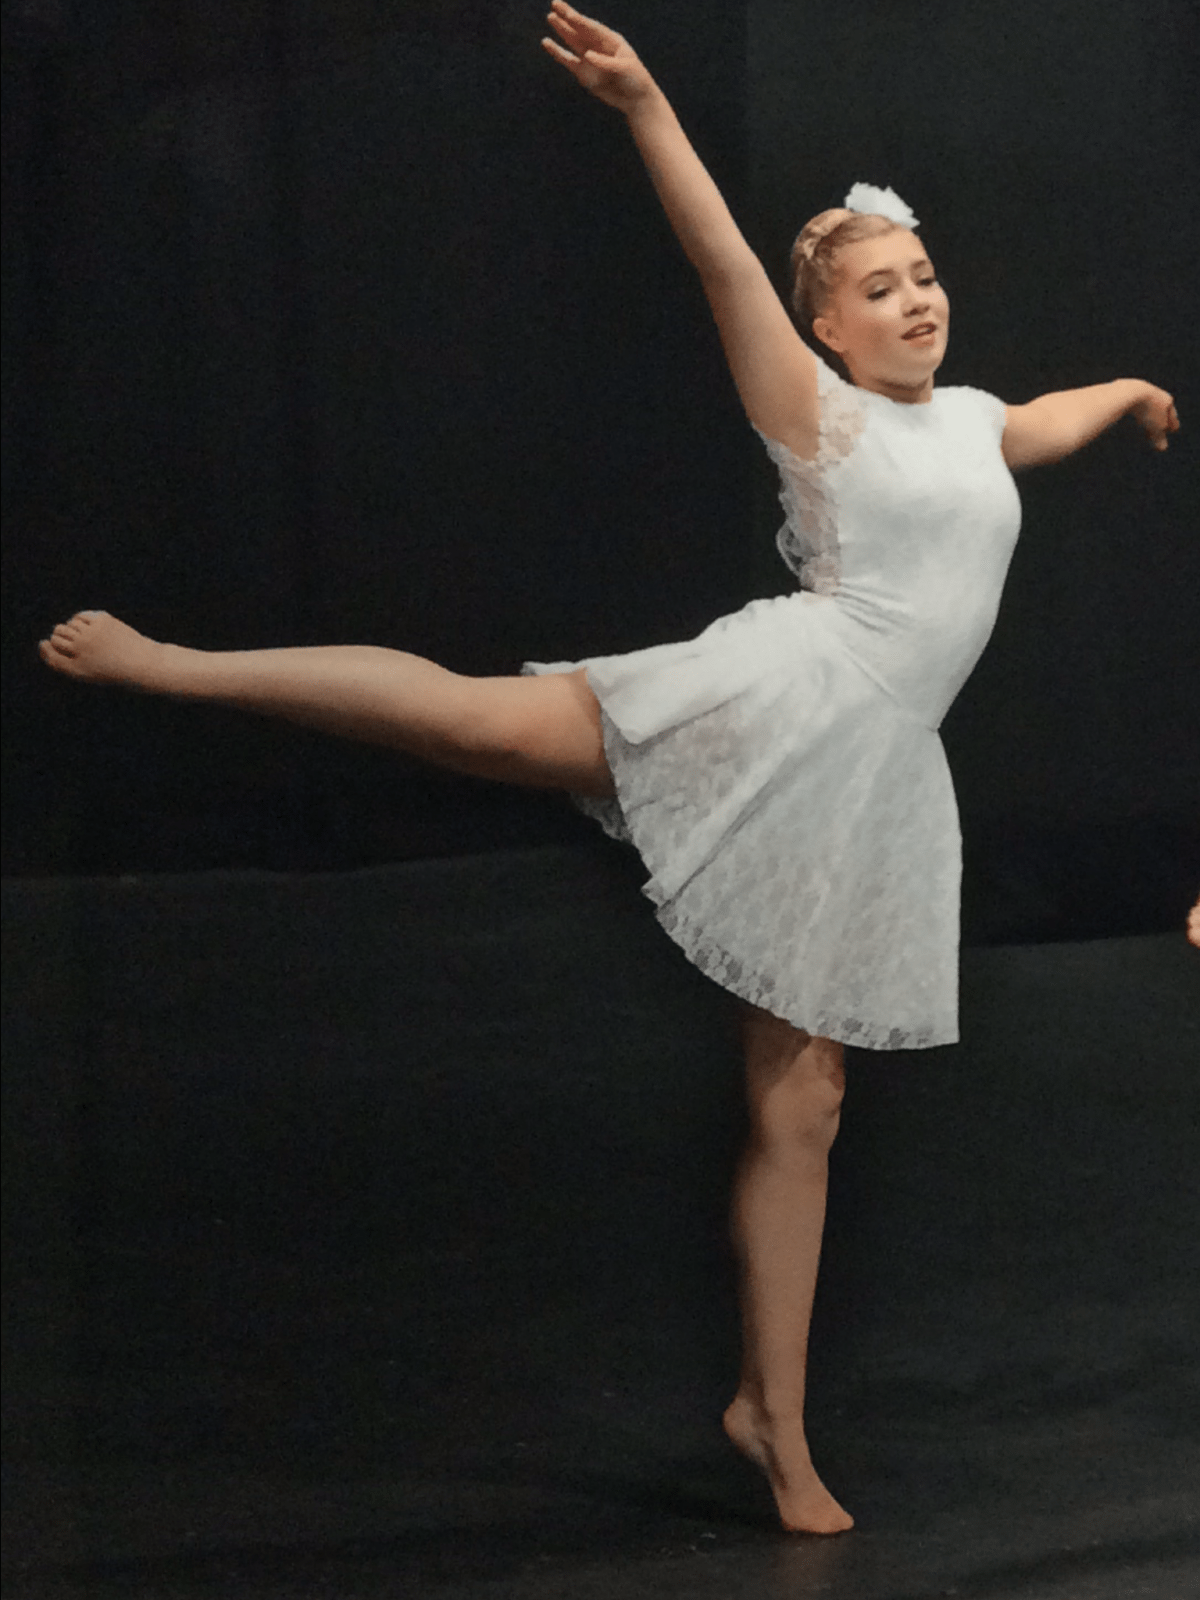 Lyrical Dance Costume made with Lycra